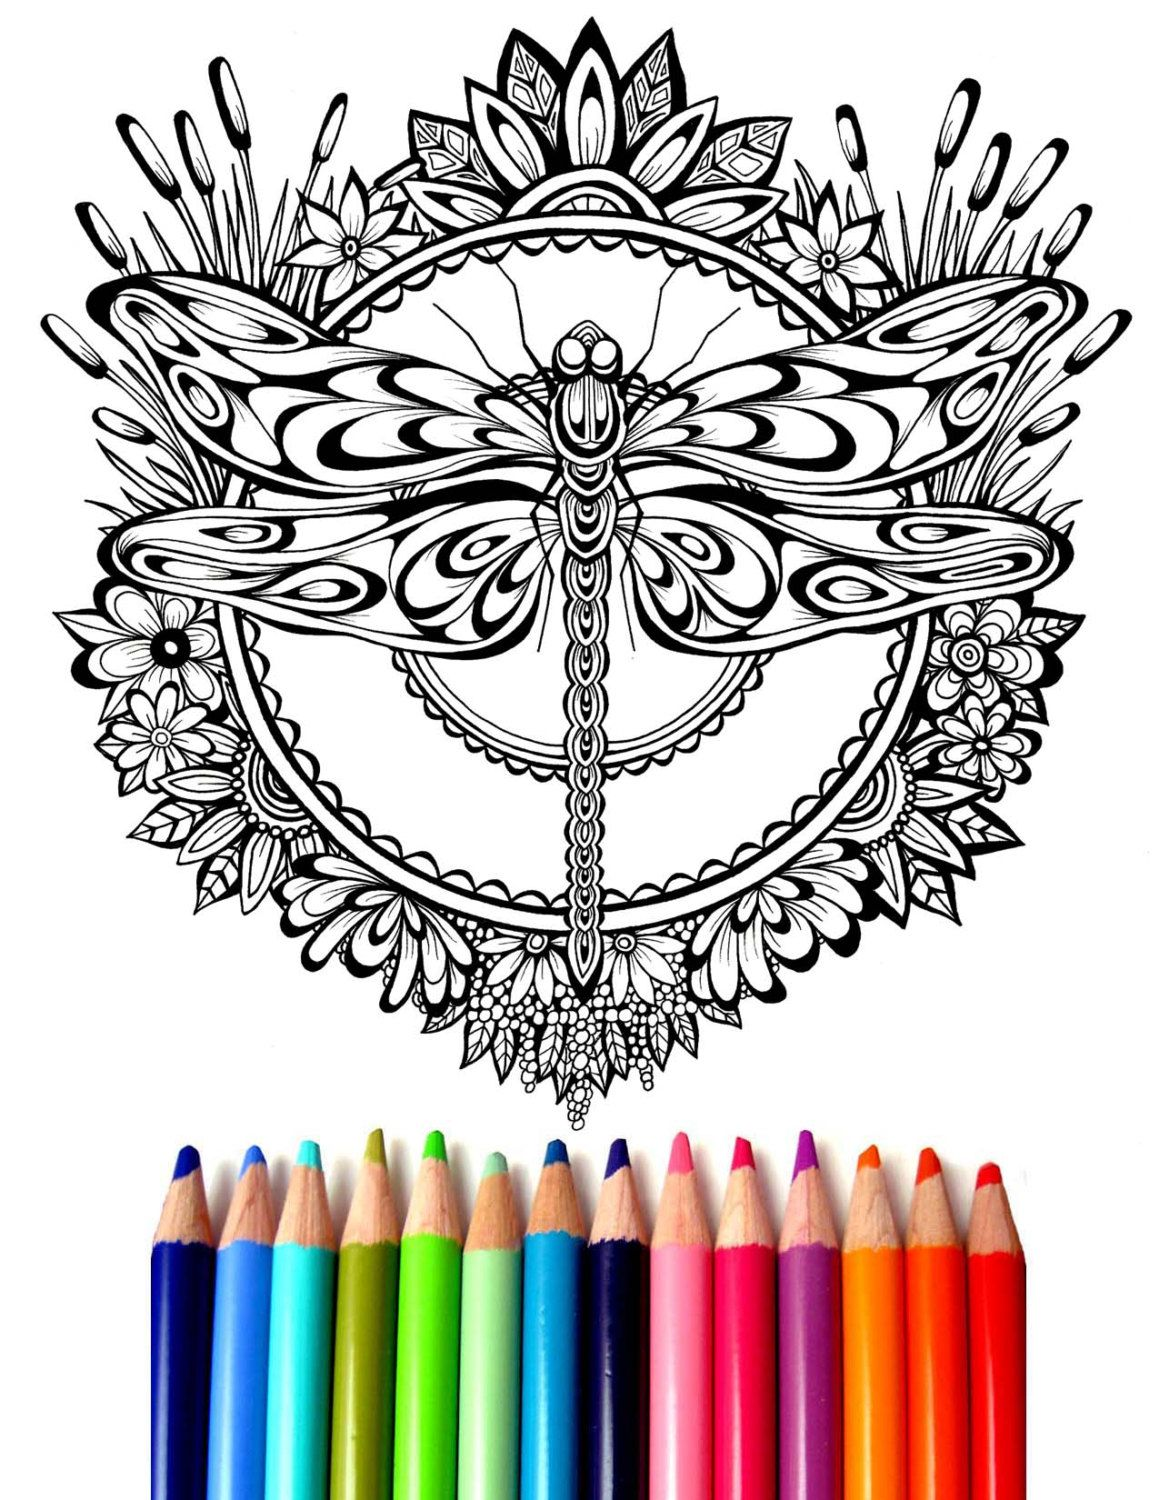 Dragonfly Mandala Coloring Sheet